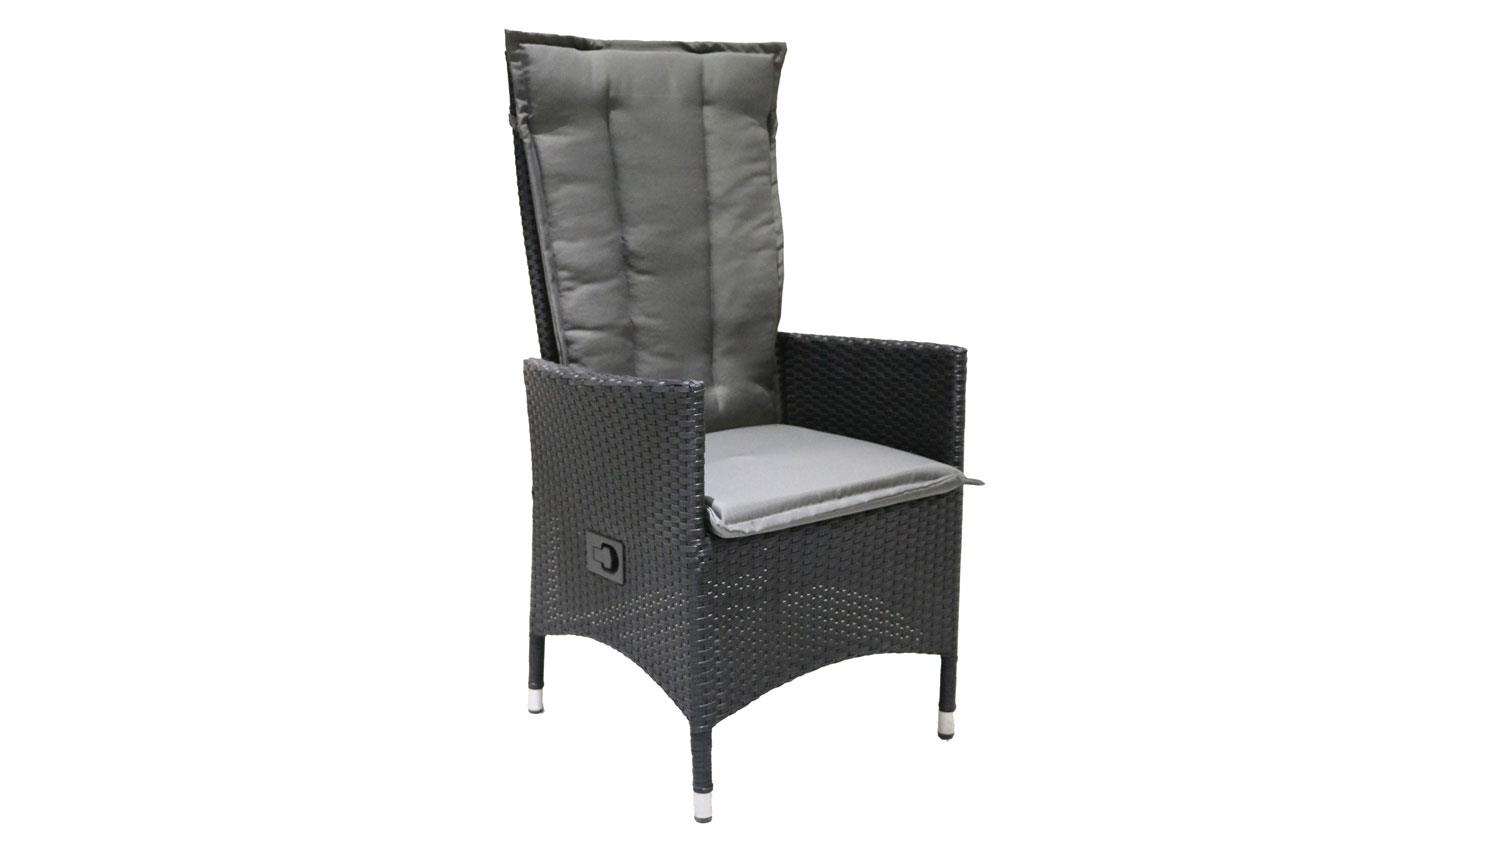 relaxliege polyrattan gartenstuhl schwarz anthrazit verstellbar. Black Bedroom Furniture Sets. Home Design Ideas